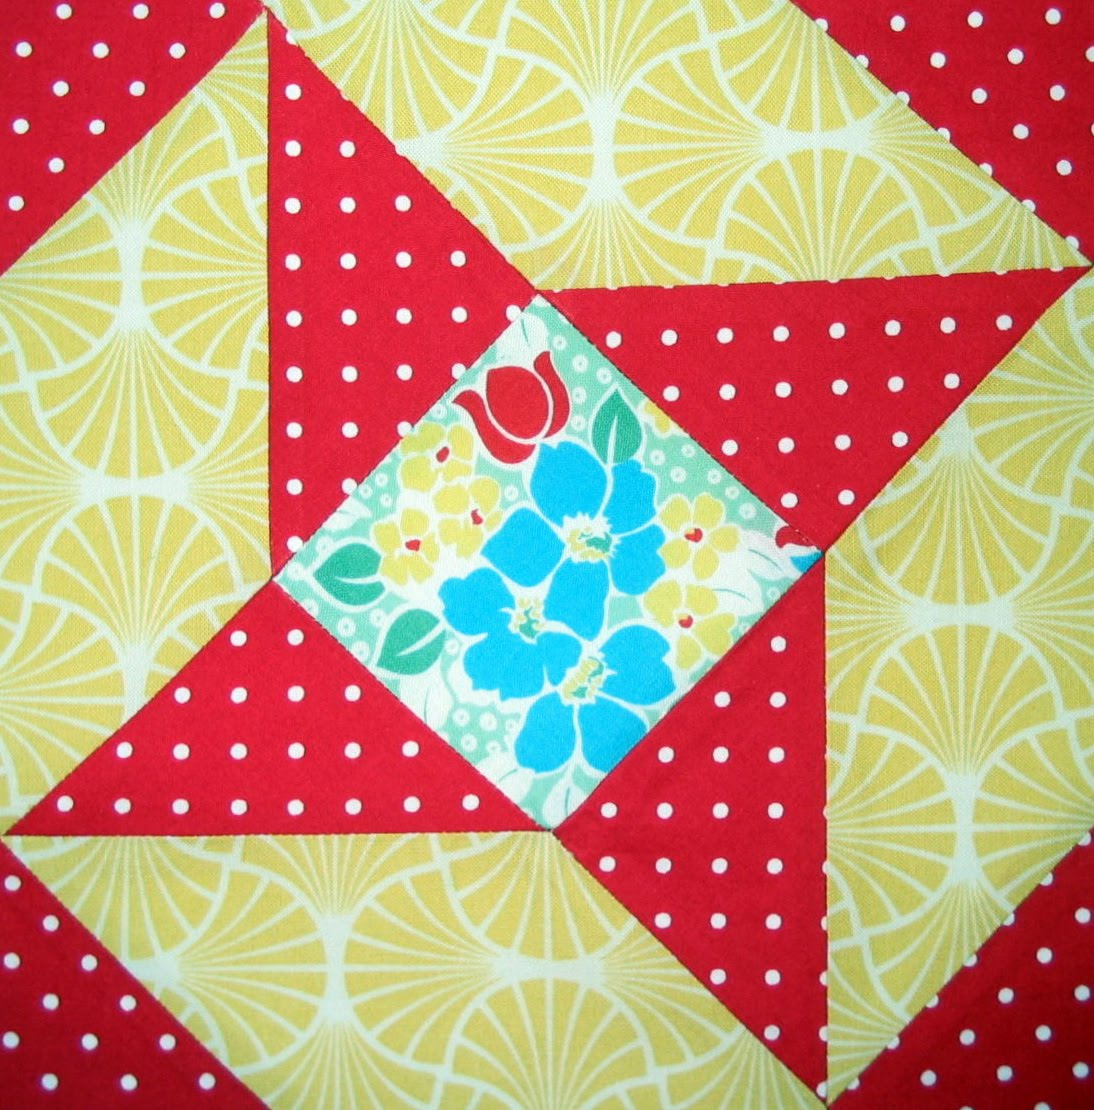 Beginner Quilt Patterns For Quilting: Starwood Quilter: Beginner's Delight Quilt Block